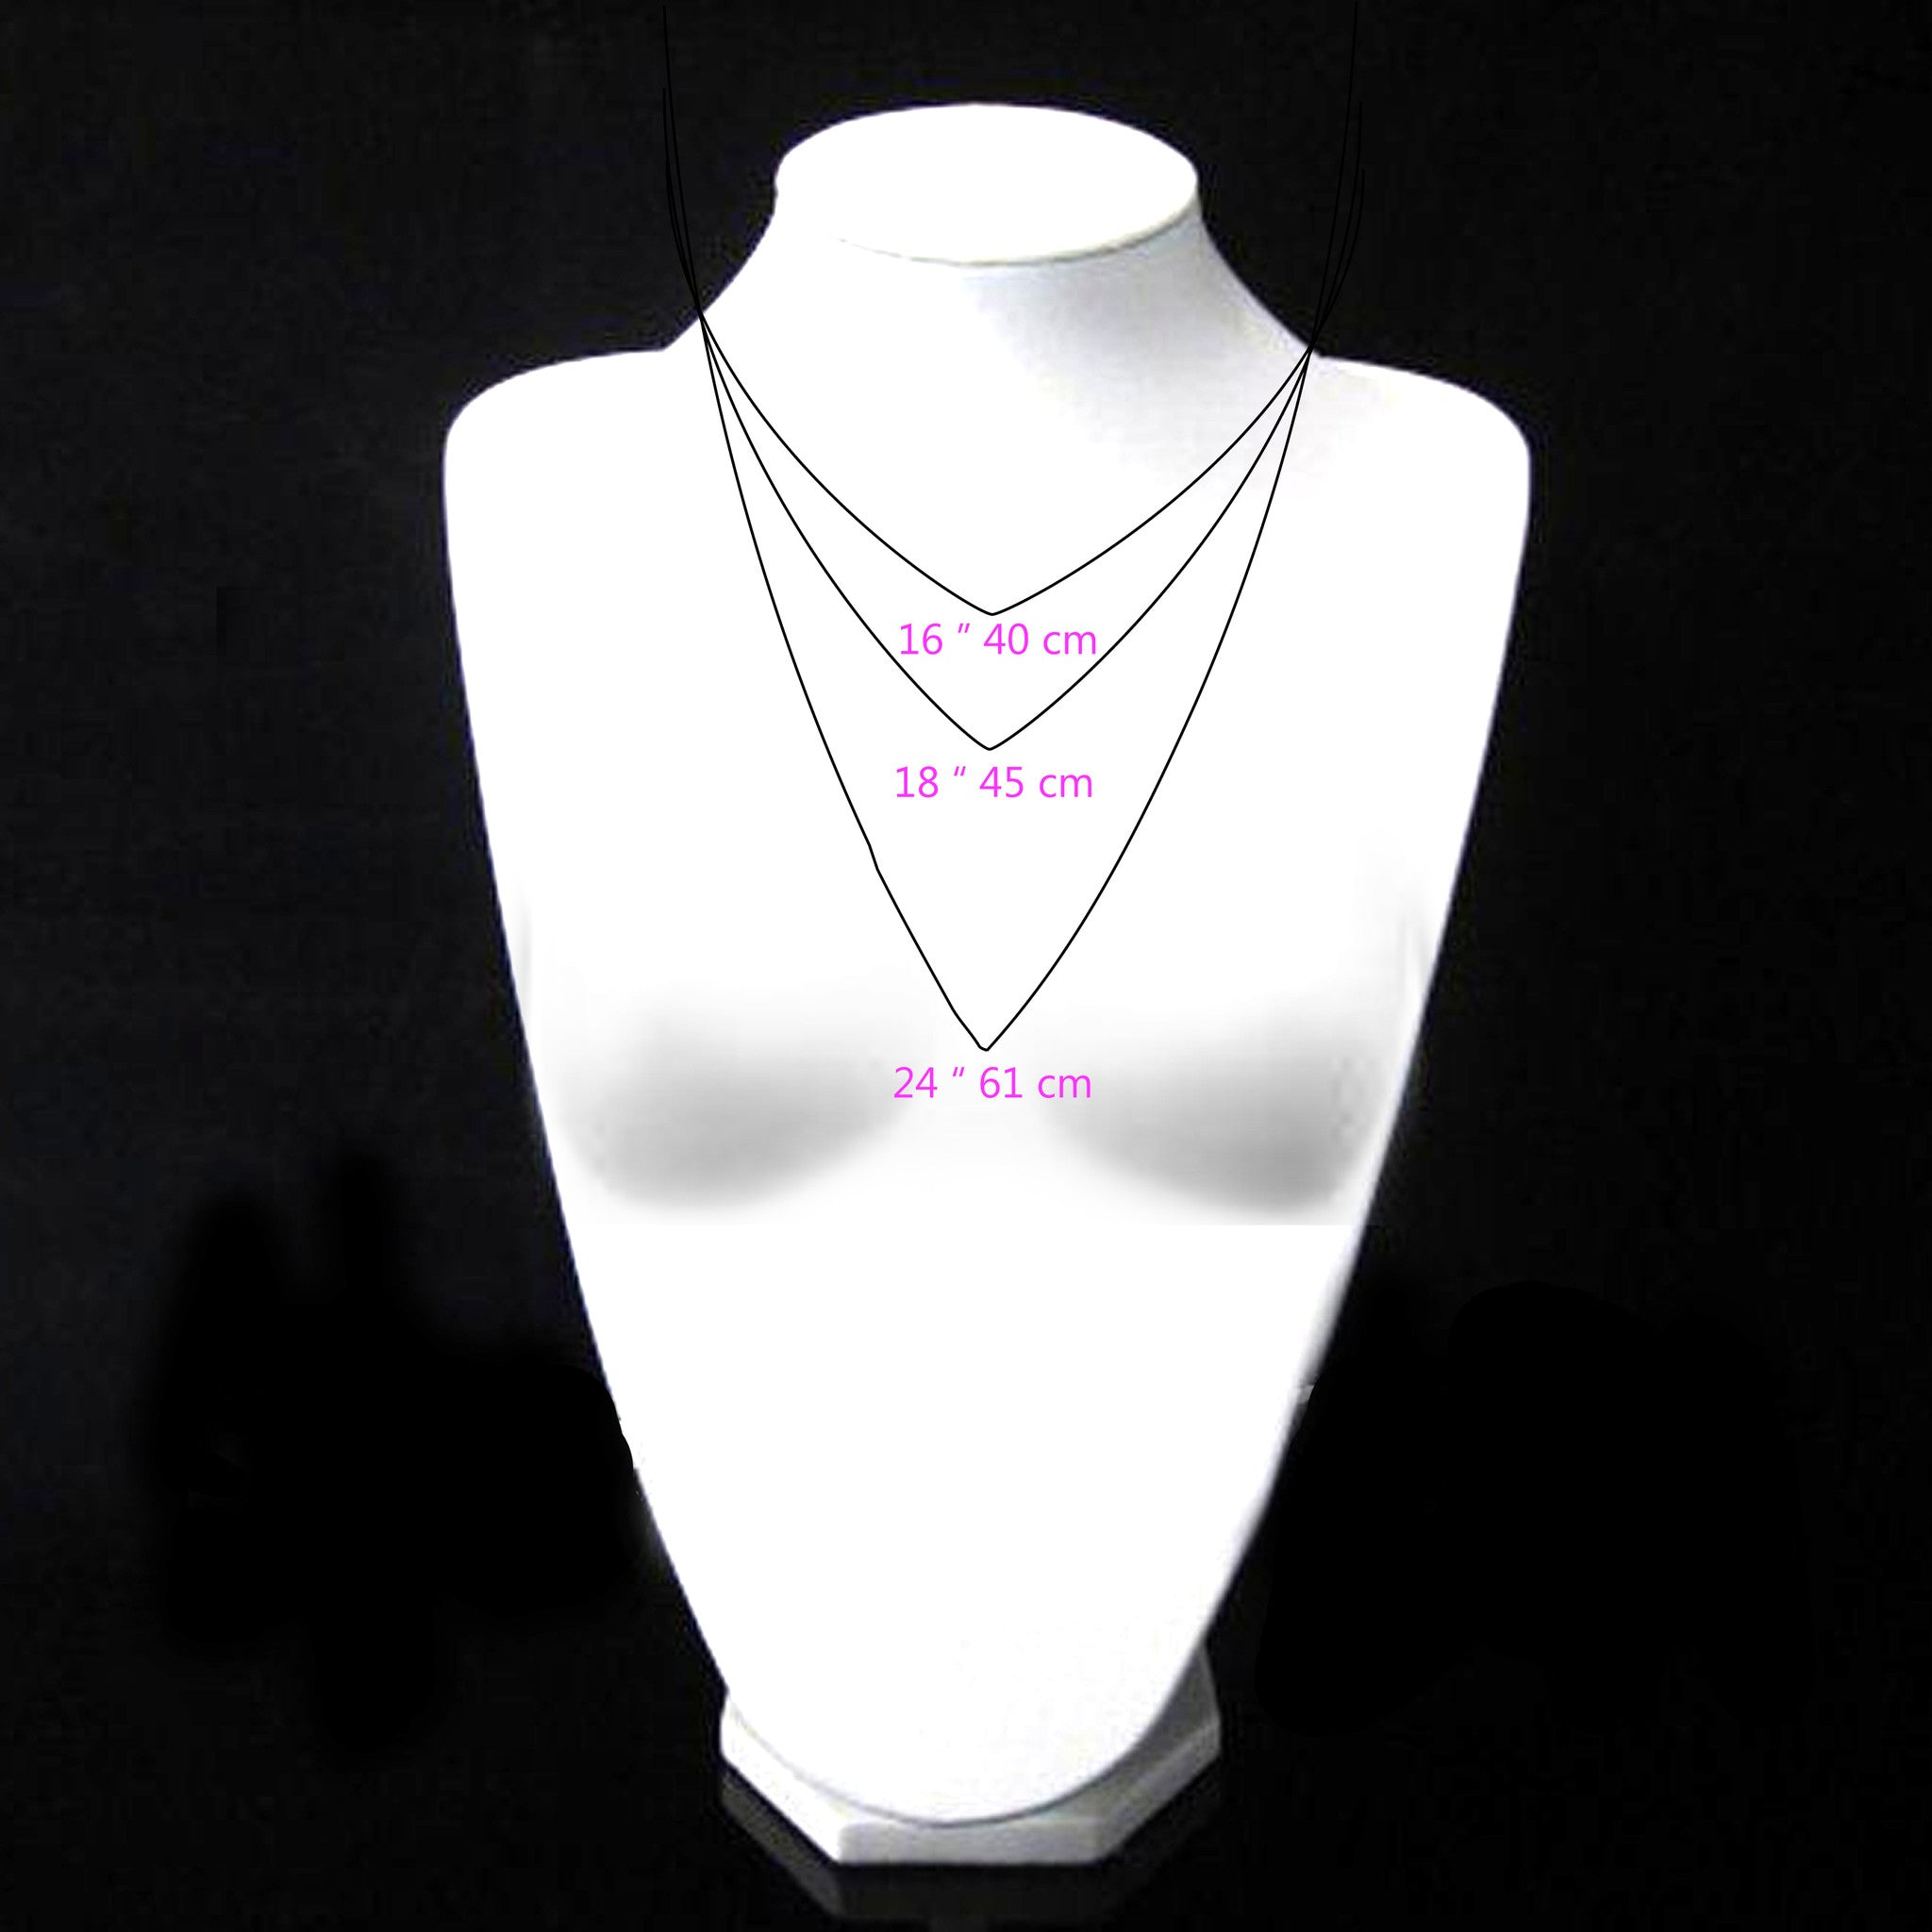 Necklaces - Half Triple A Symmetric Liya Chain & Small Chandelier Pendant